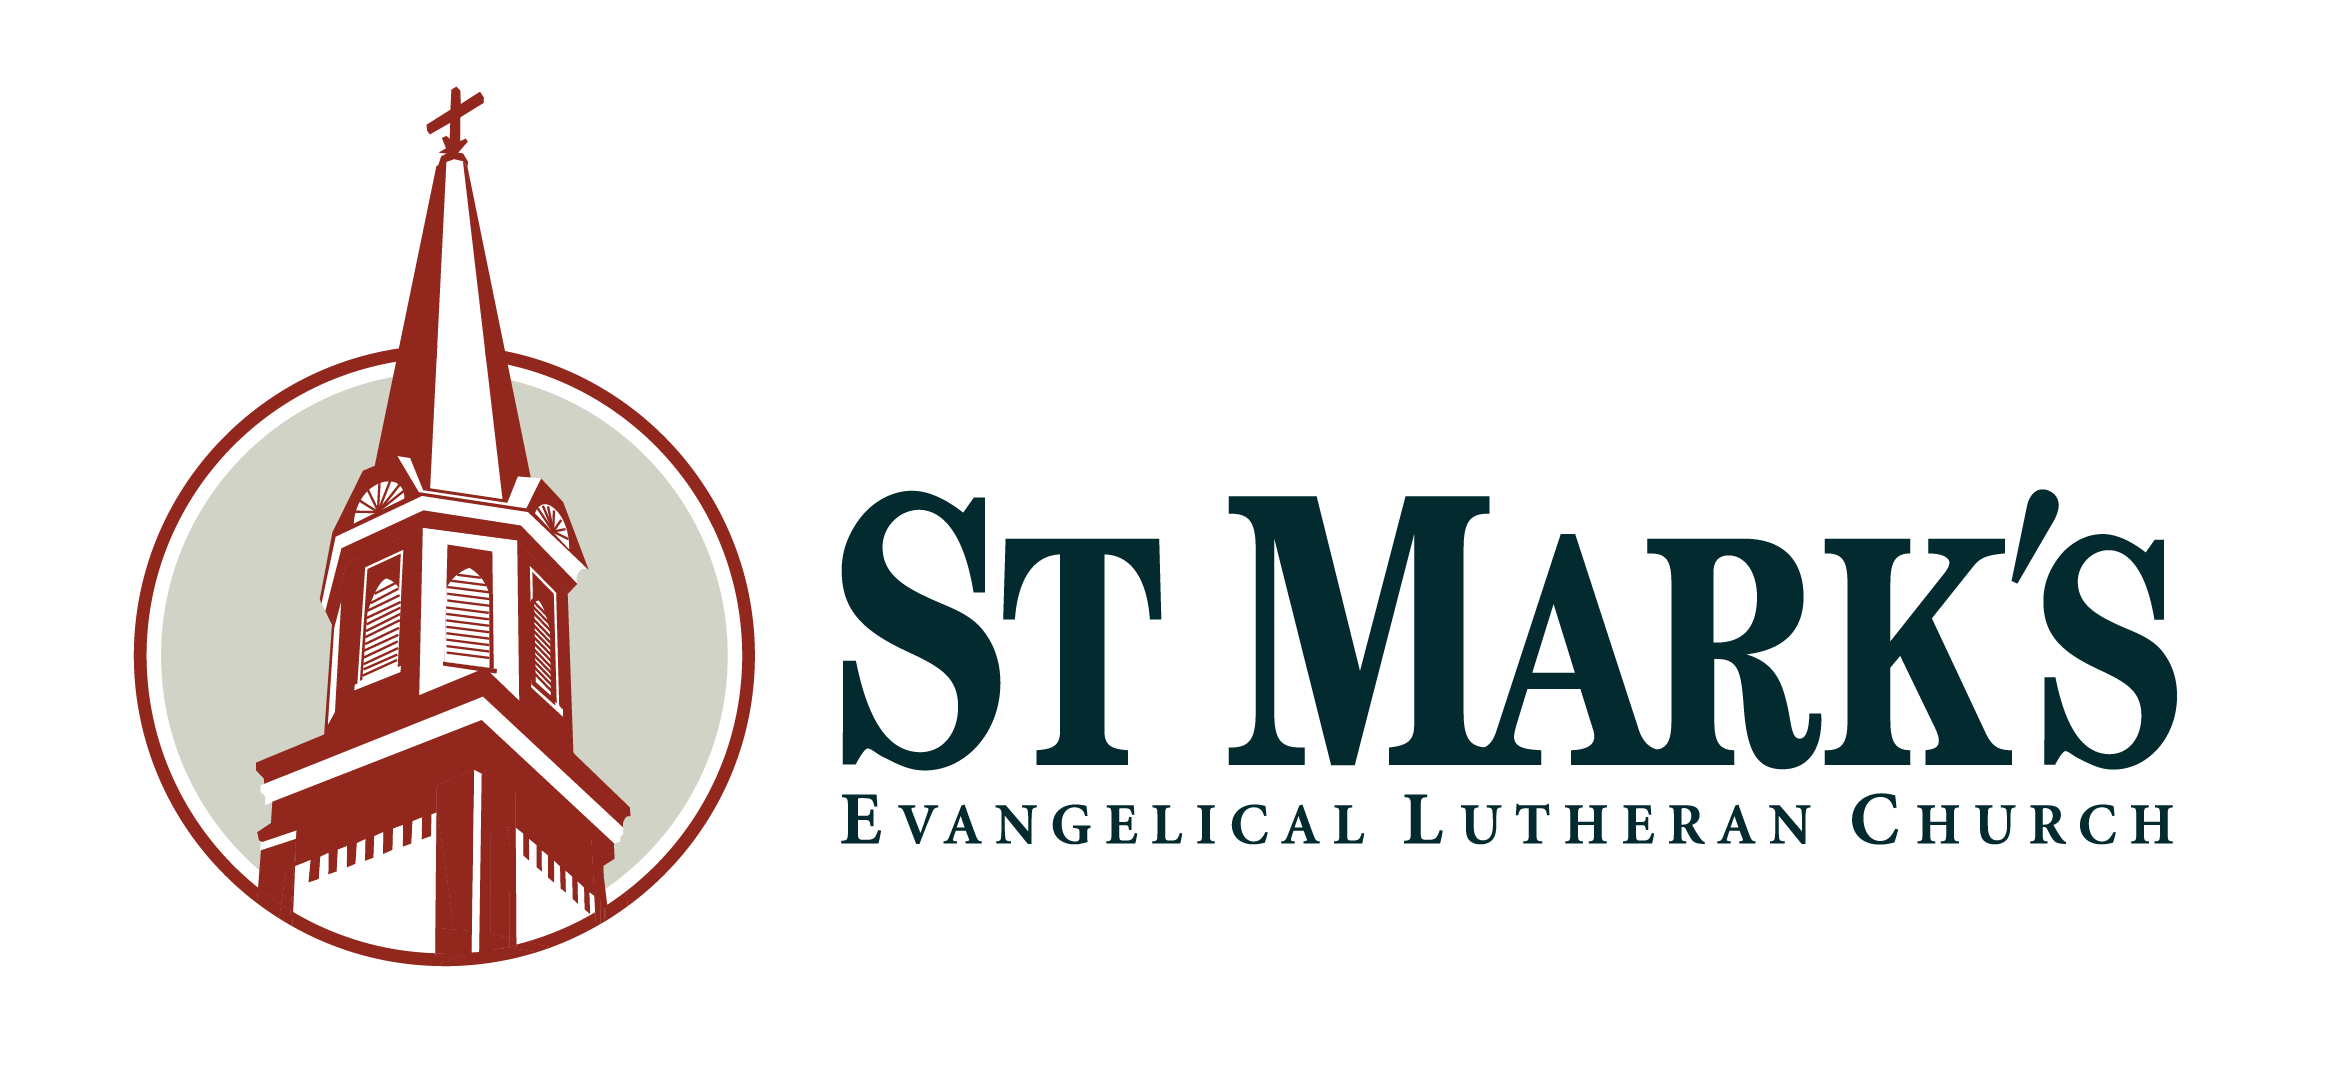 StMarks_ChurchLogo_Color_Horizontal-01